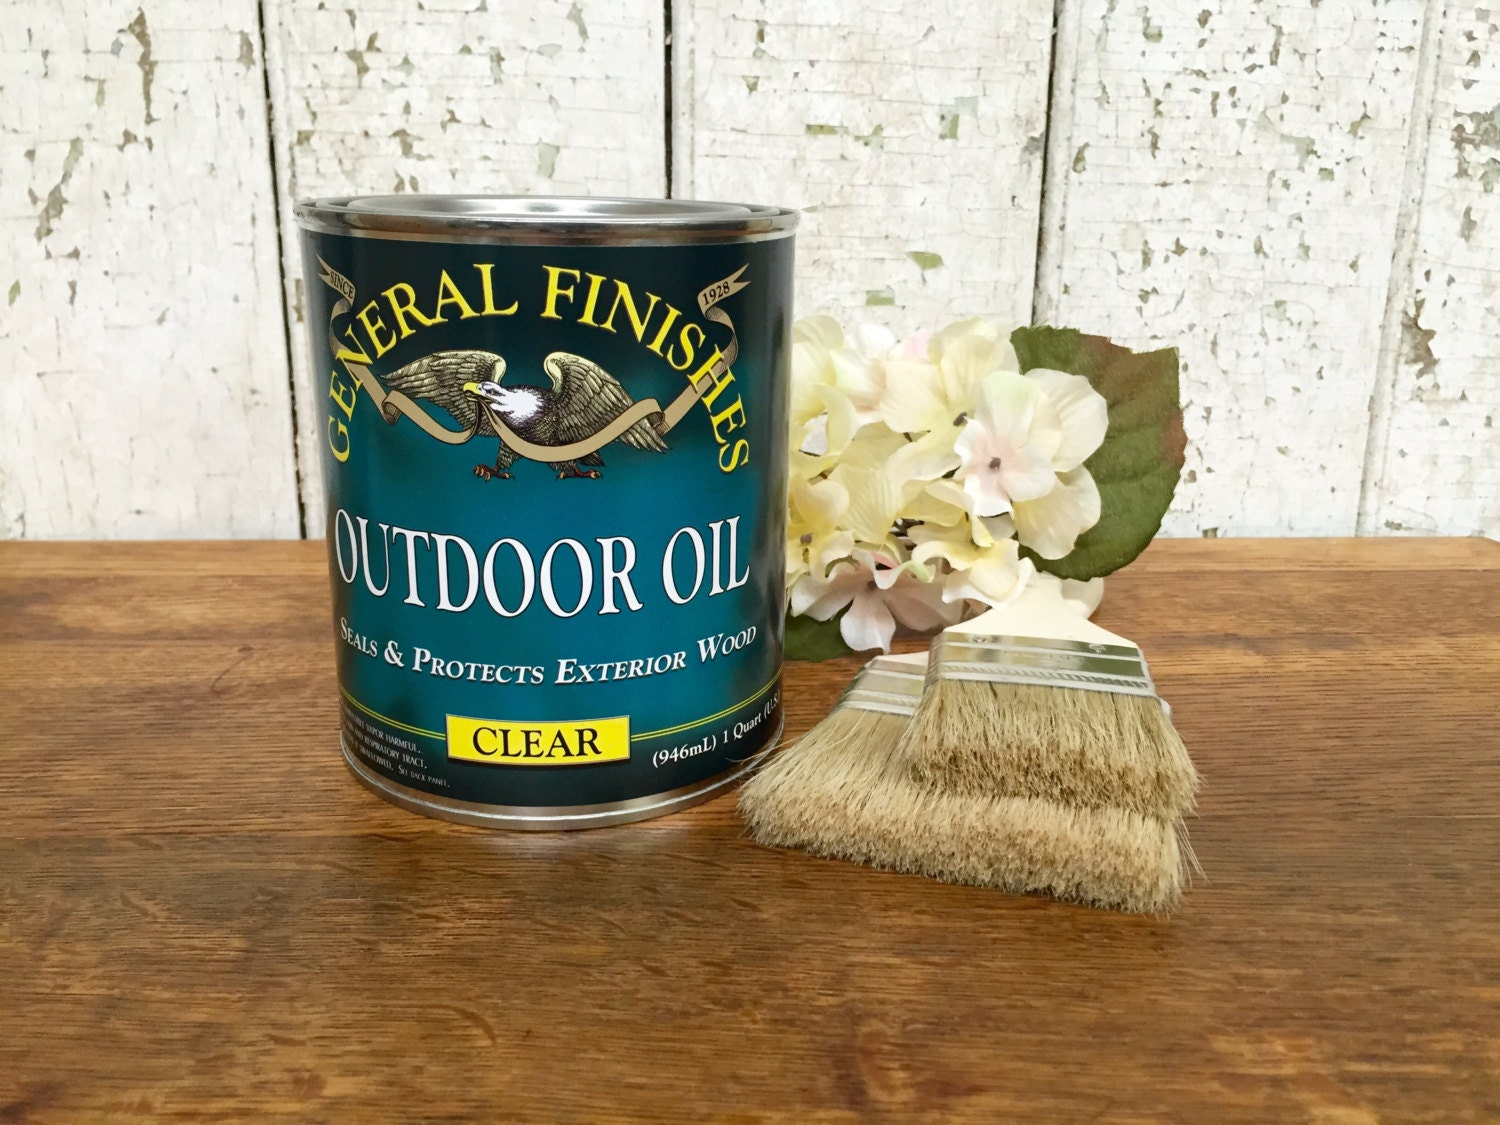 Linseed Oil Finish General Finishes Outdoor Wood Sealer